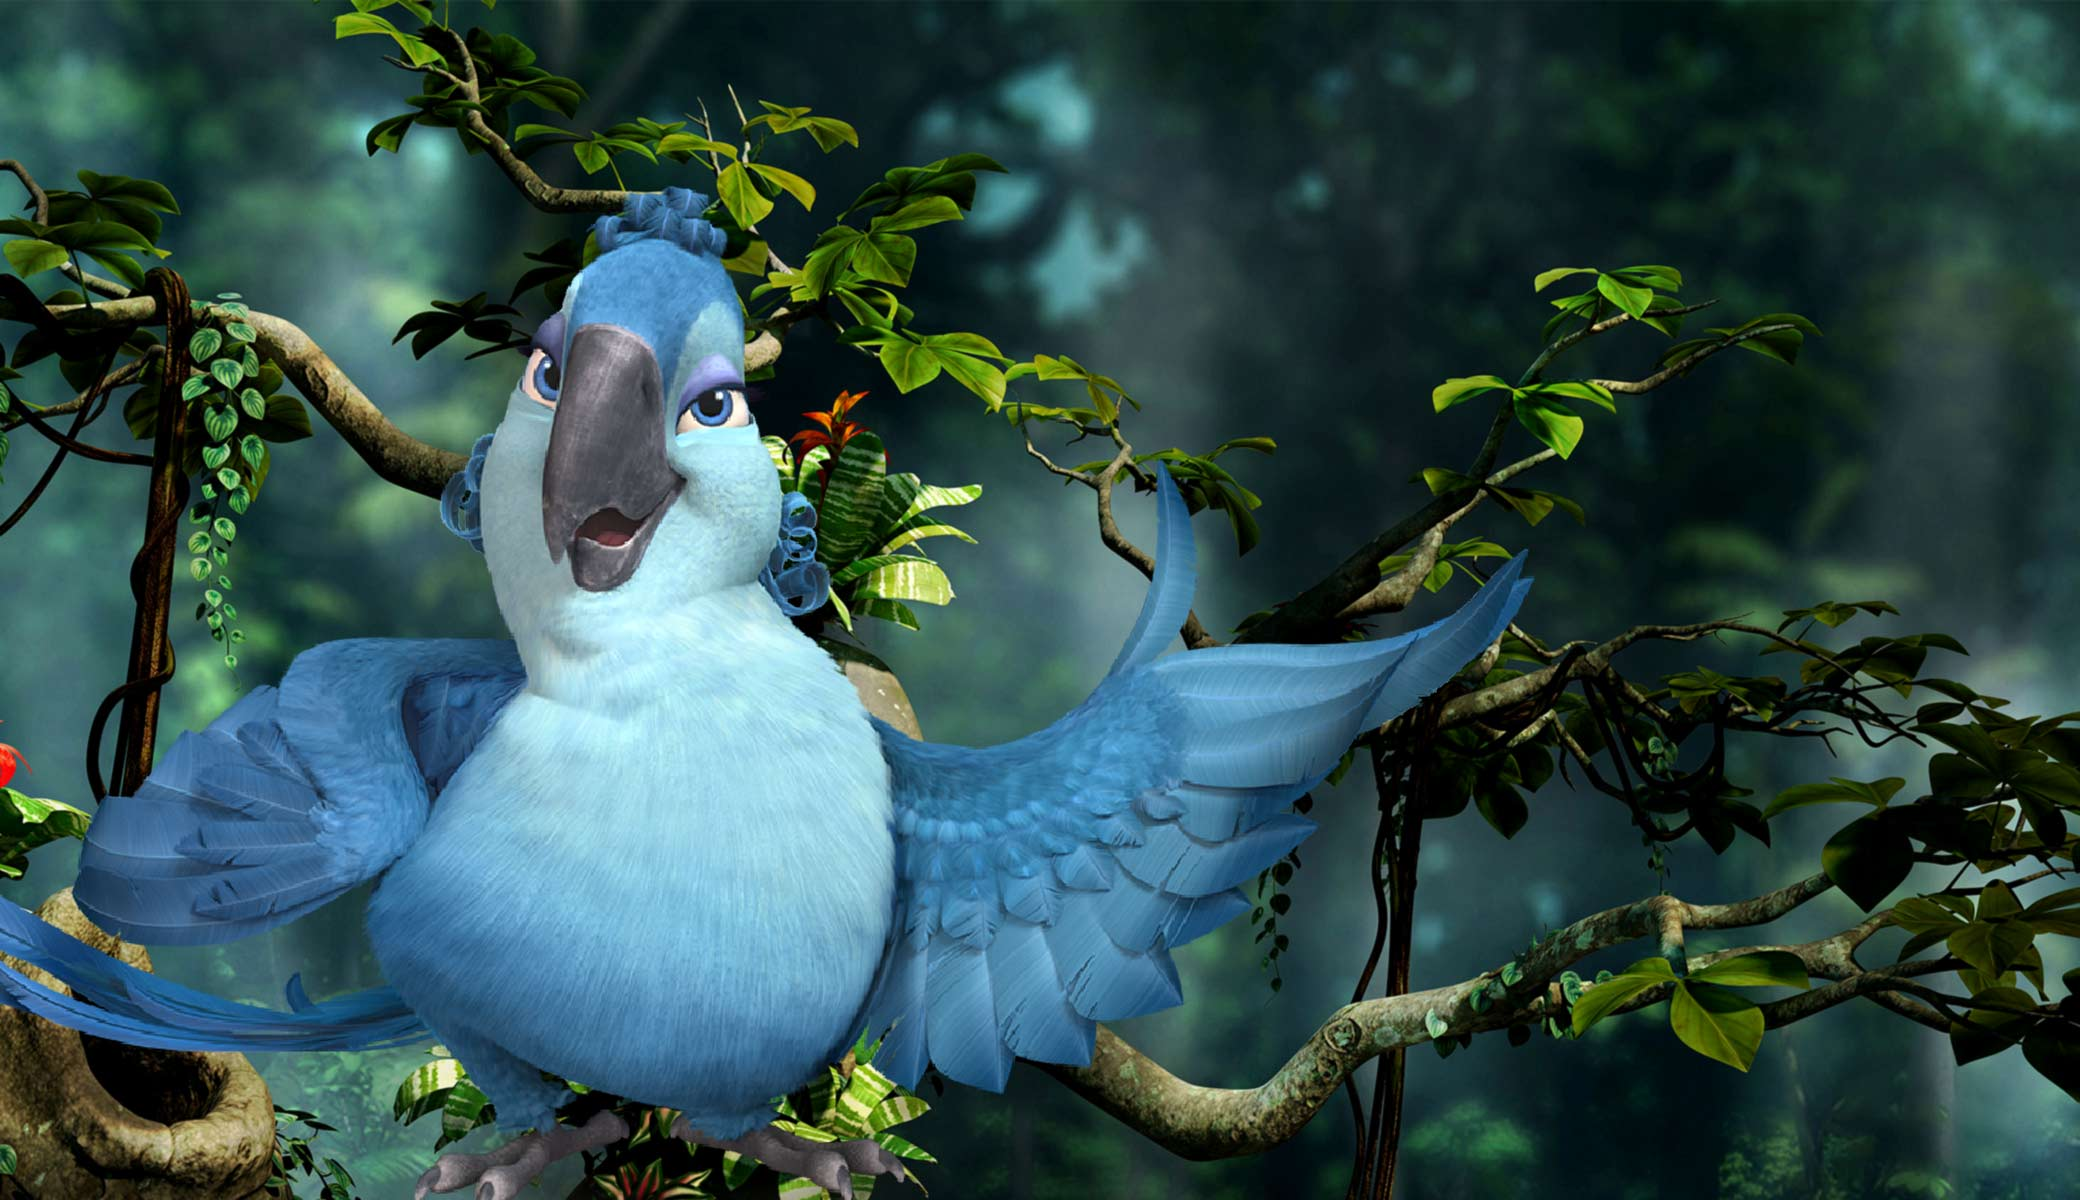 mimi from rio 2 desktop wallpaper